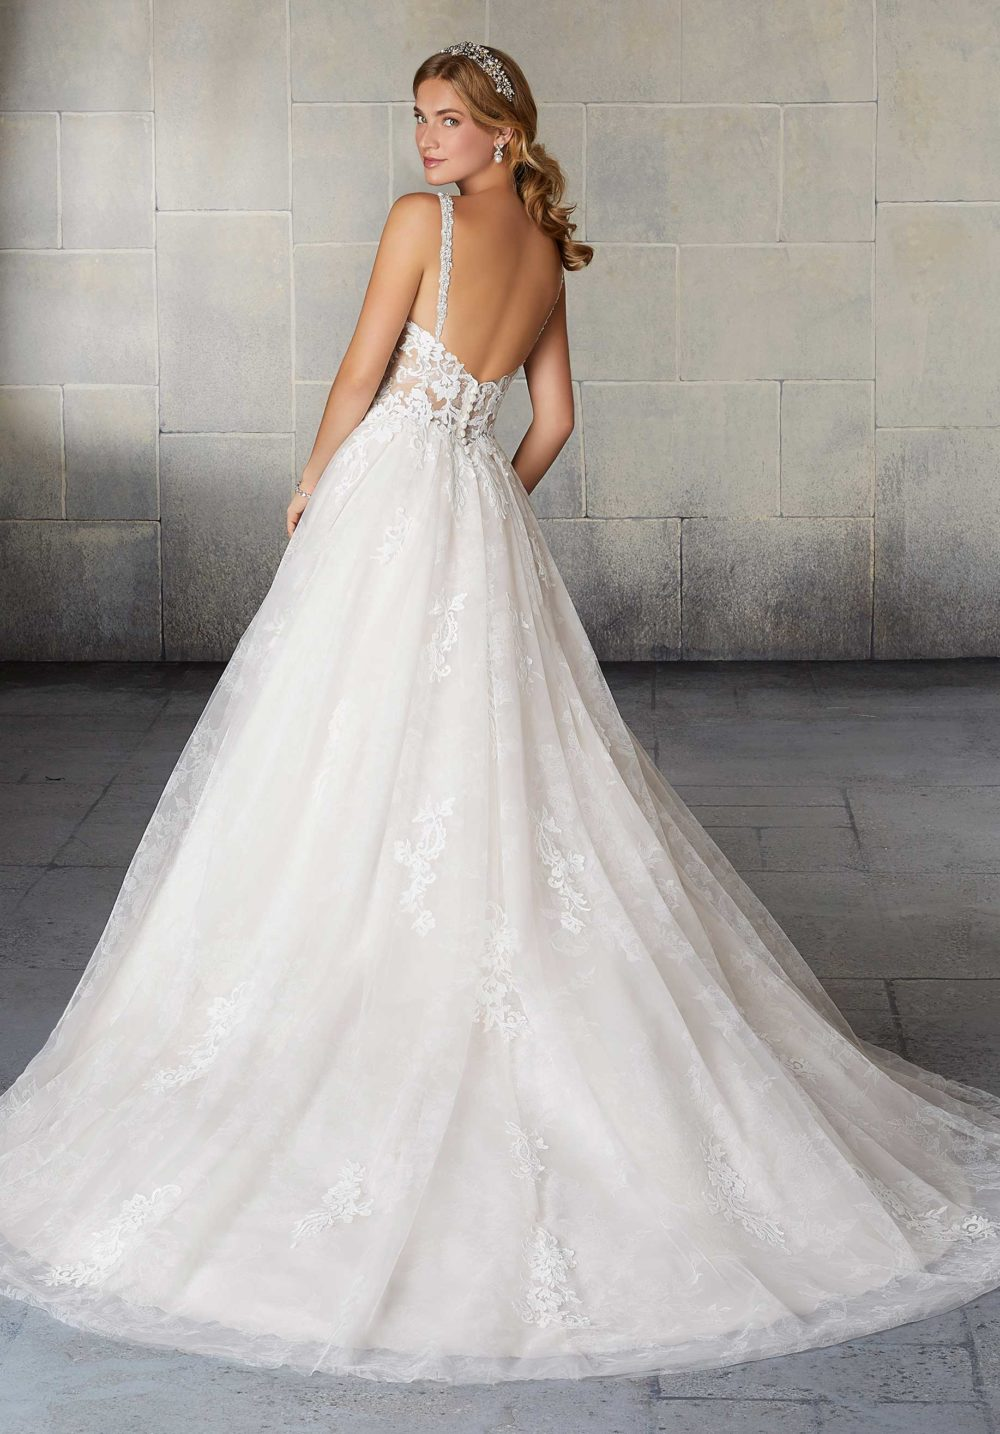 Morilee Wedding Gown Dress style 2120 back